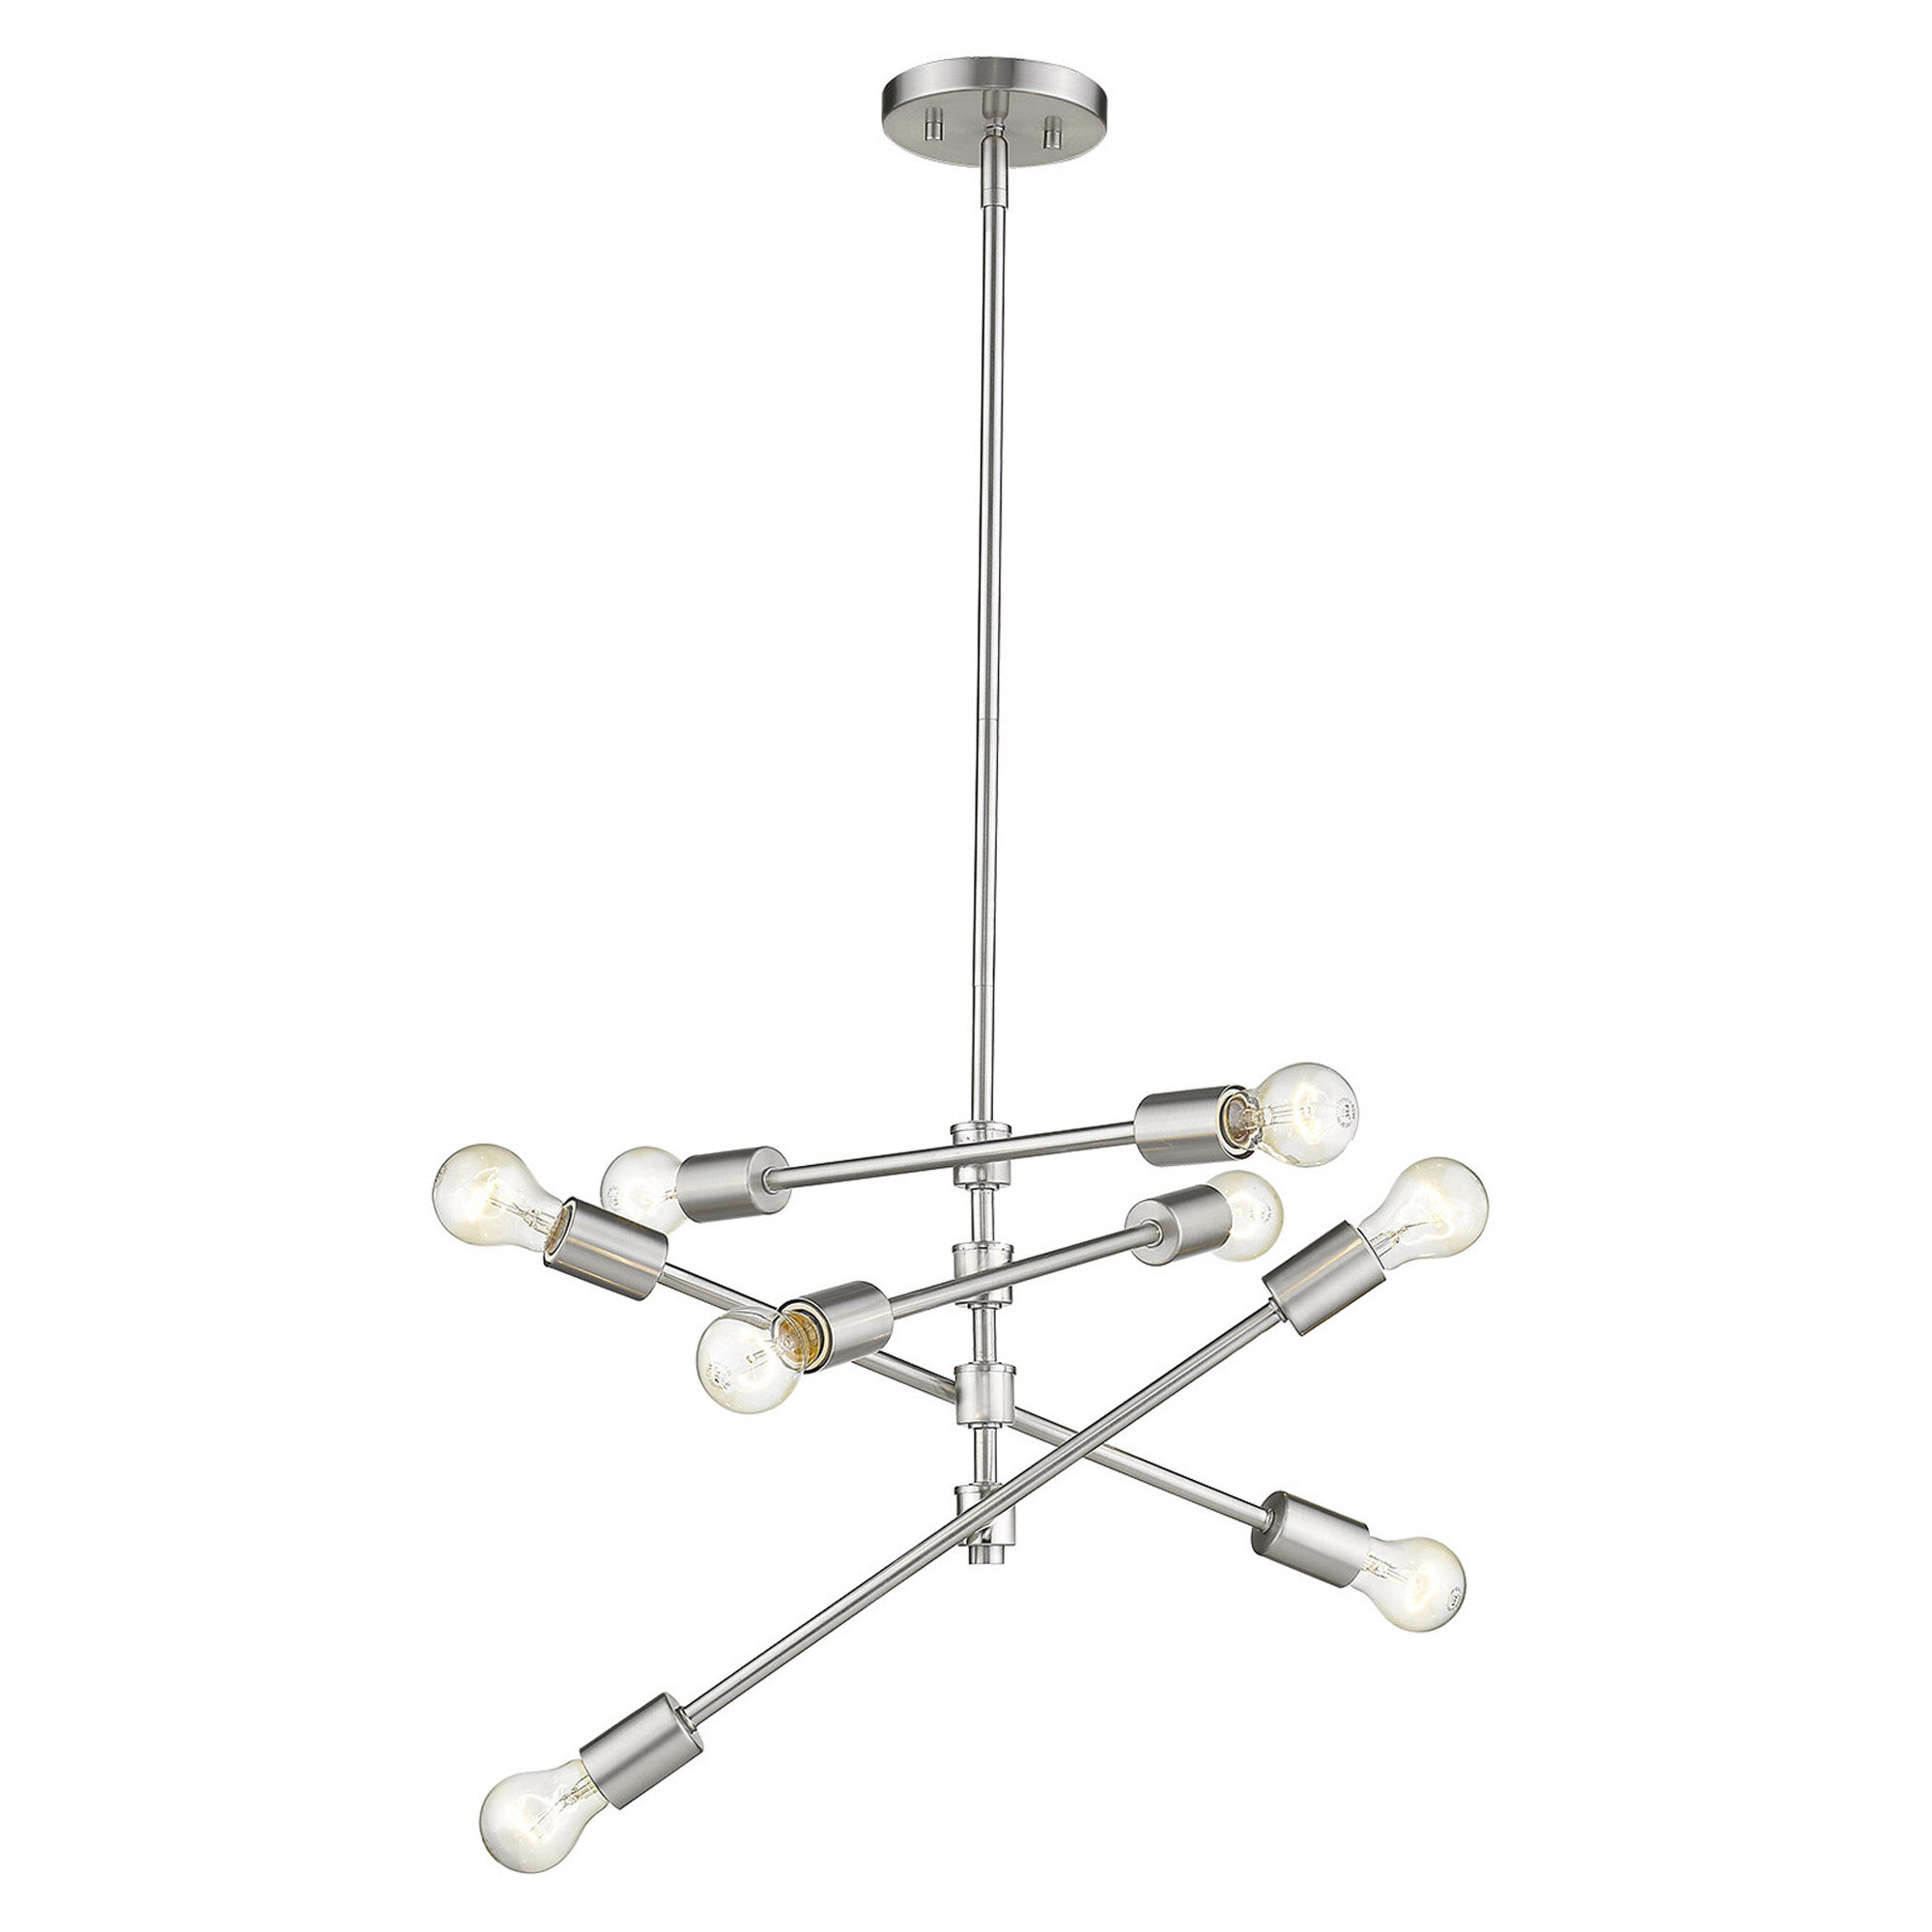 Bella Vista 8-Light Sputnik Chandelier with regard to Asher 12-Light Sputnik Chandeliers (Image 9 of 30)